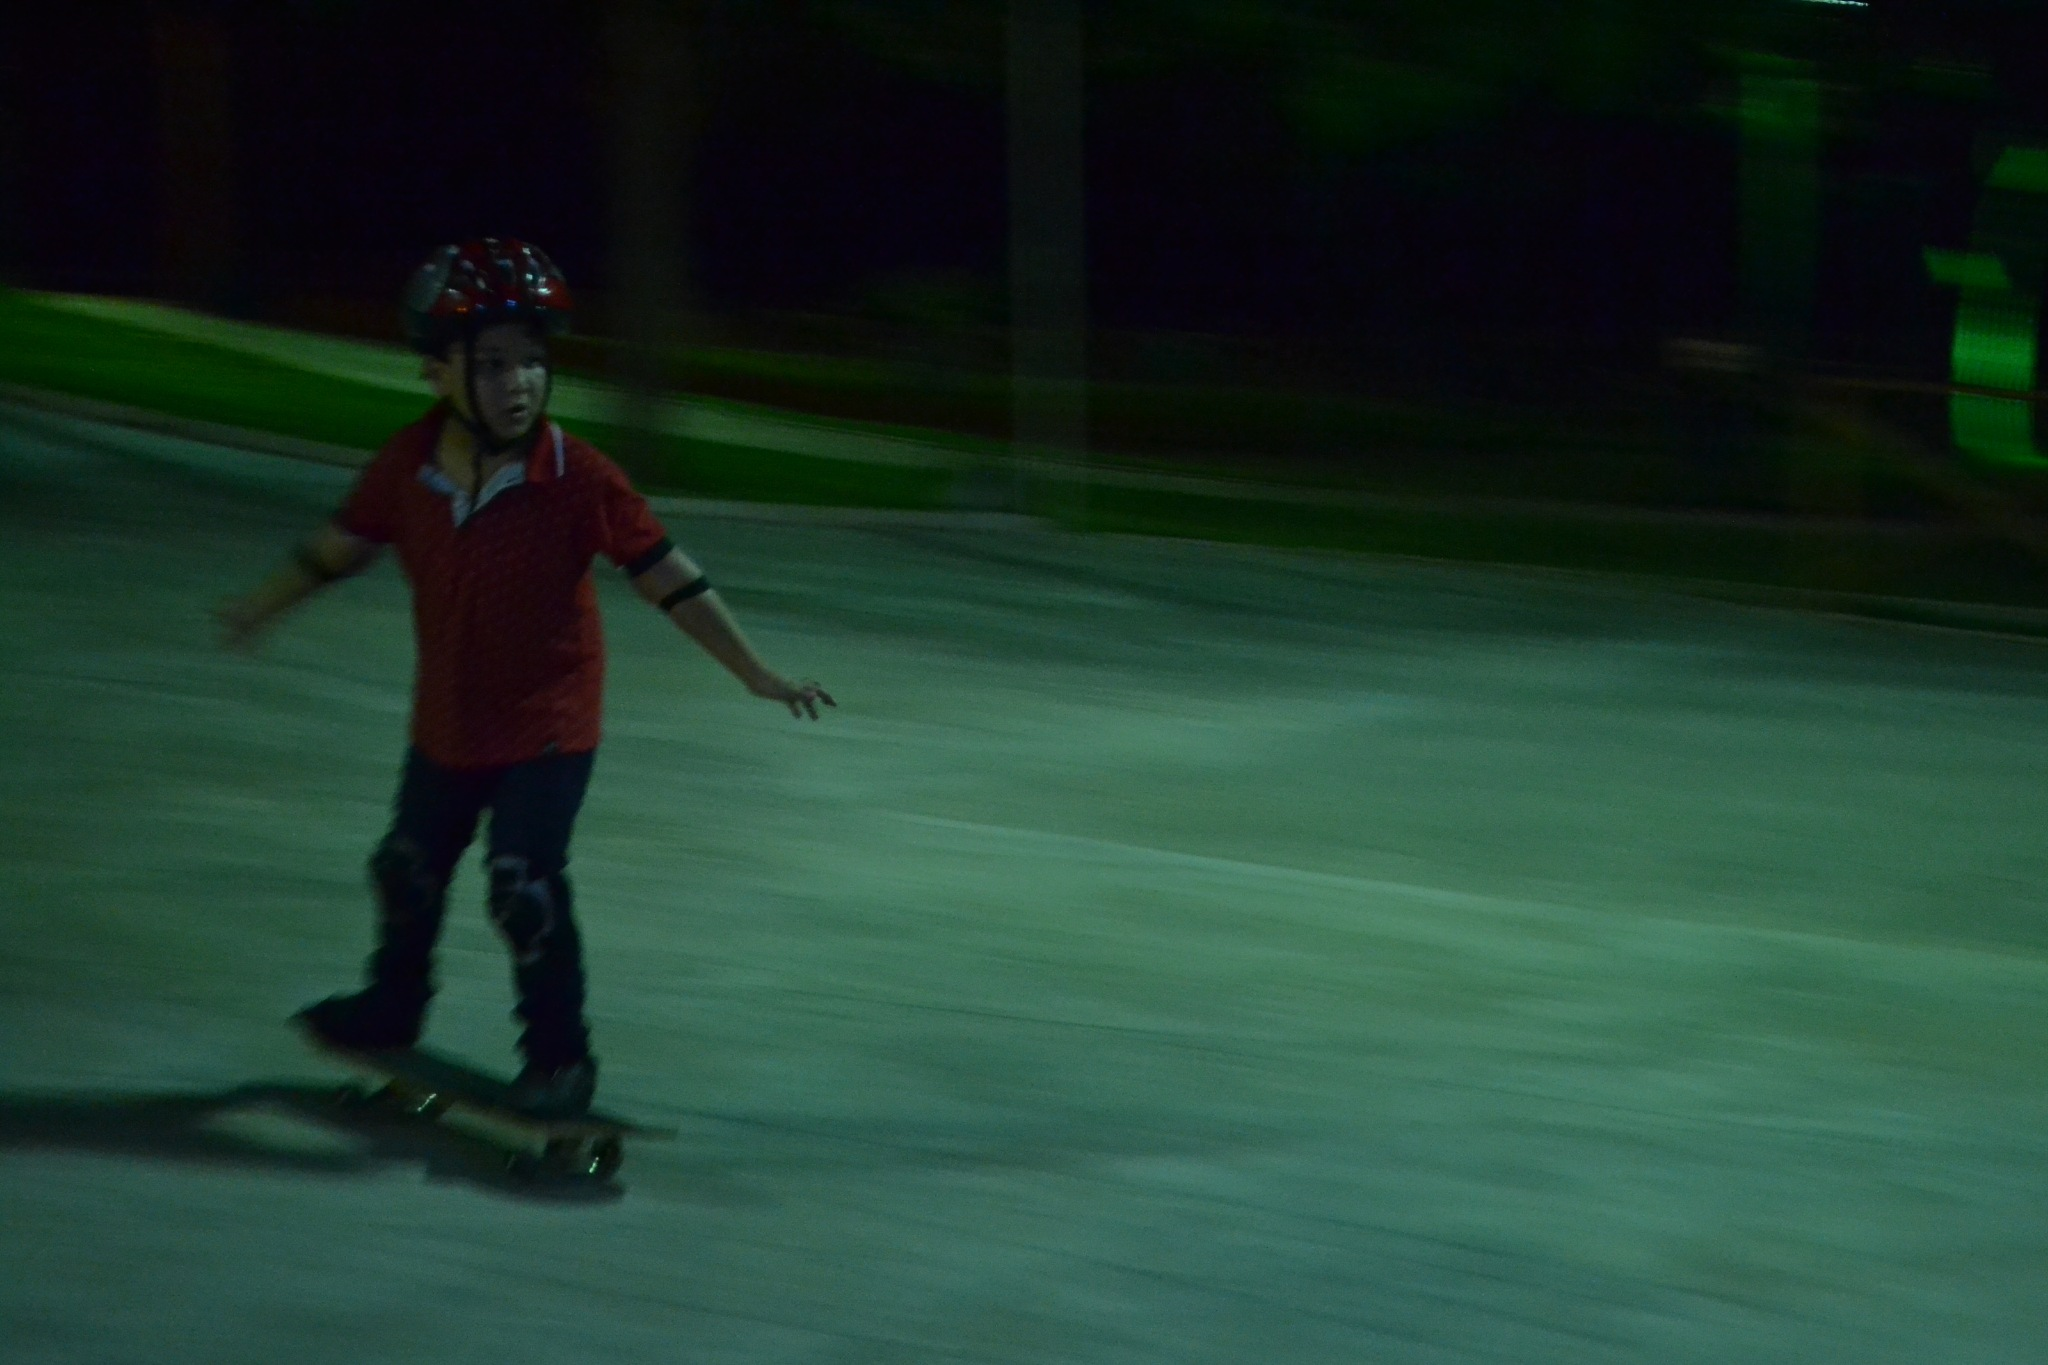 The high speed skater boy by Alexandro Lima